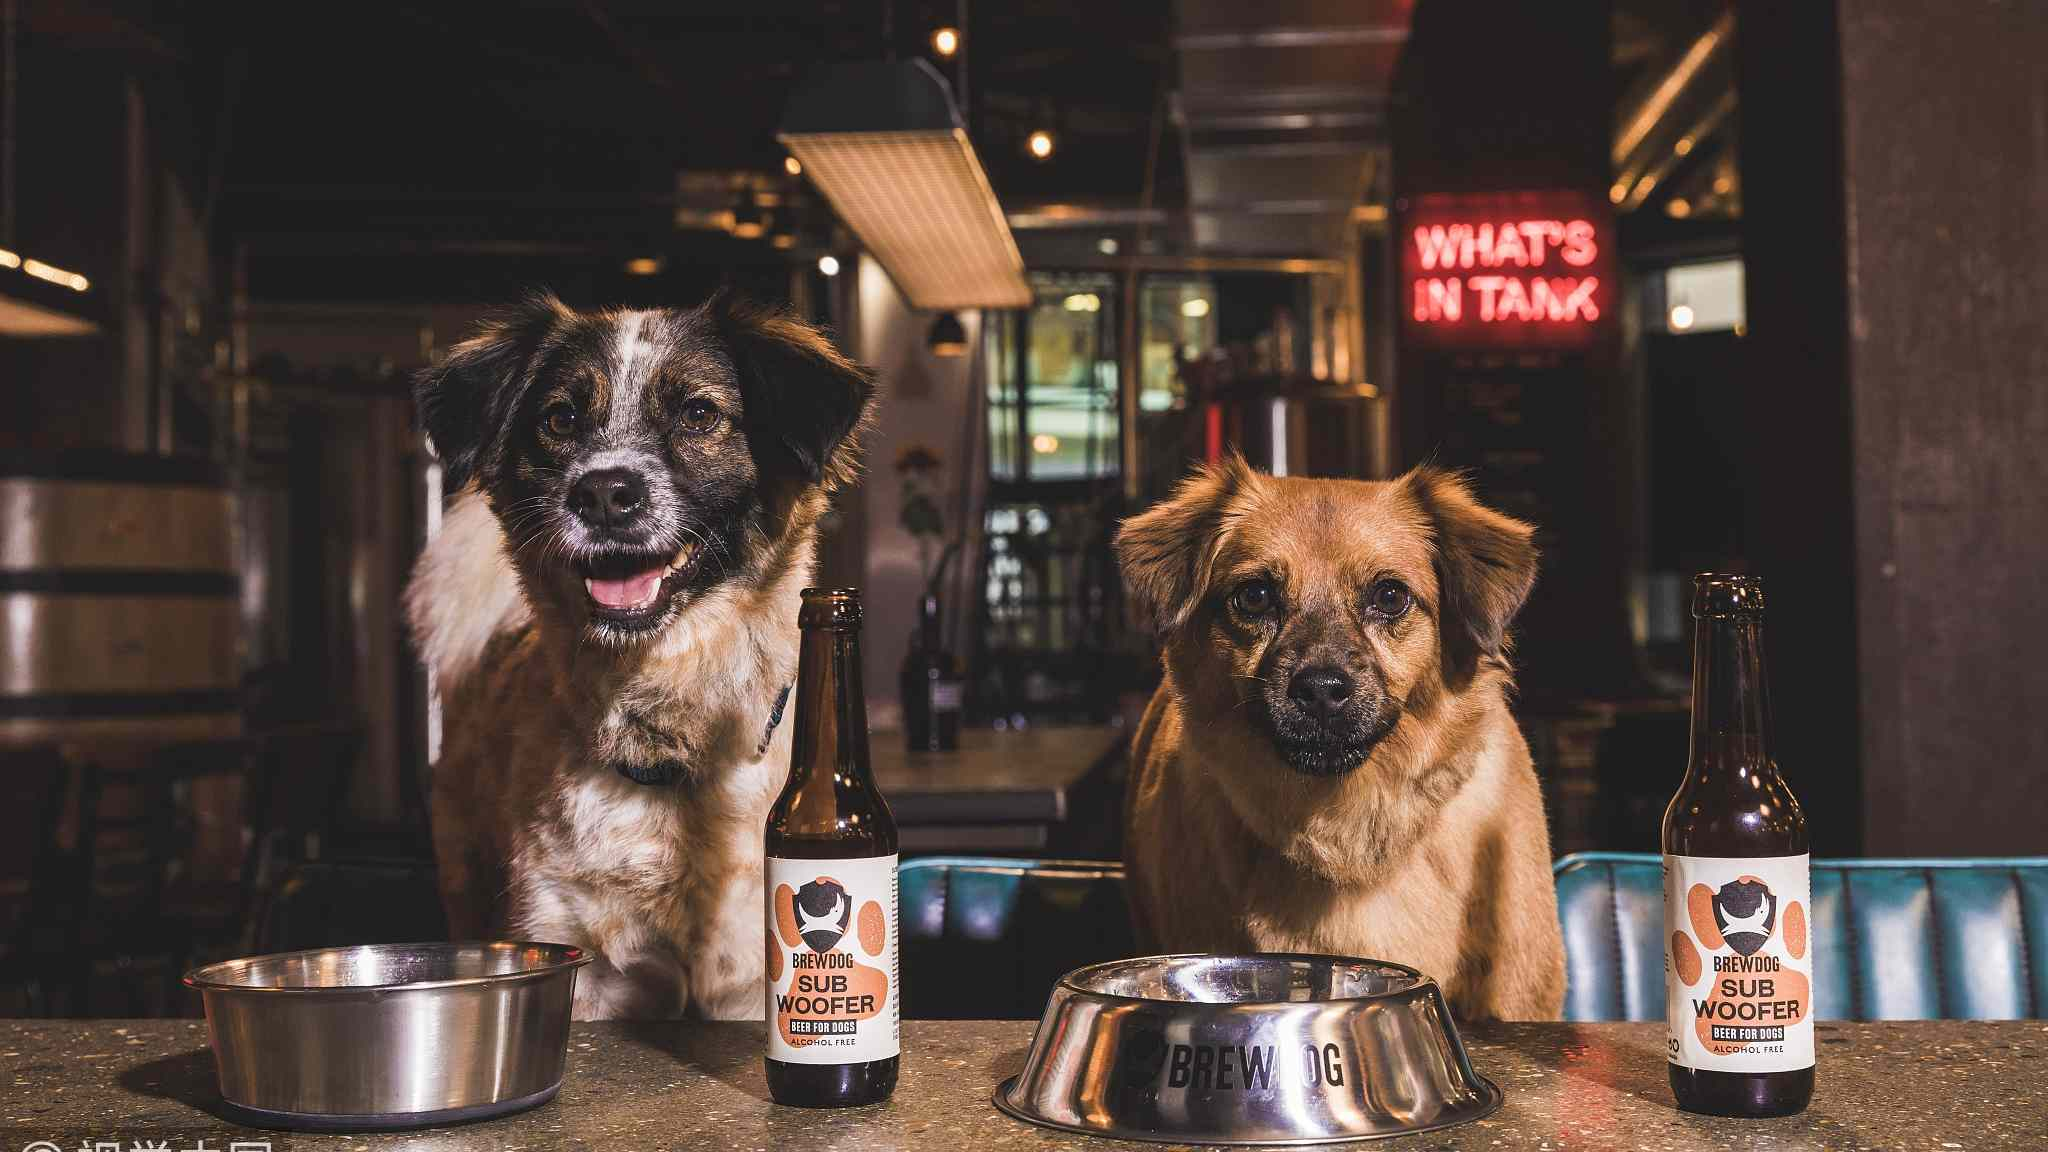 UK's BrewDog launches its first dog-friendly craft beer